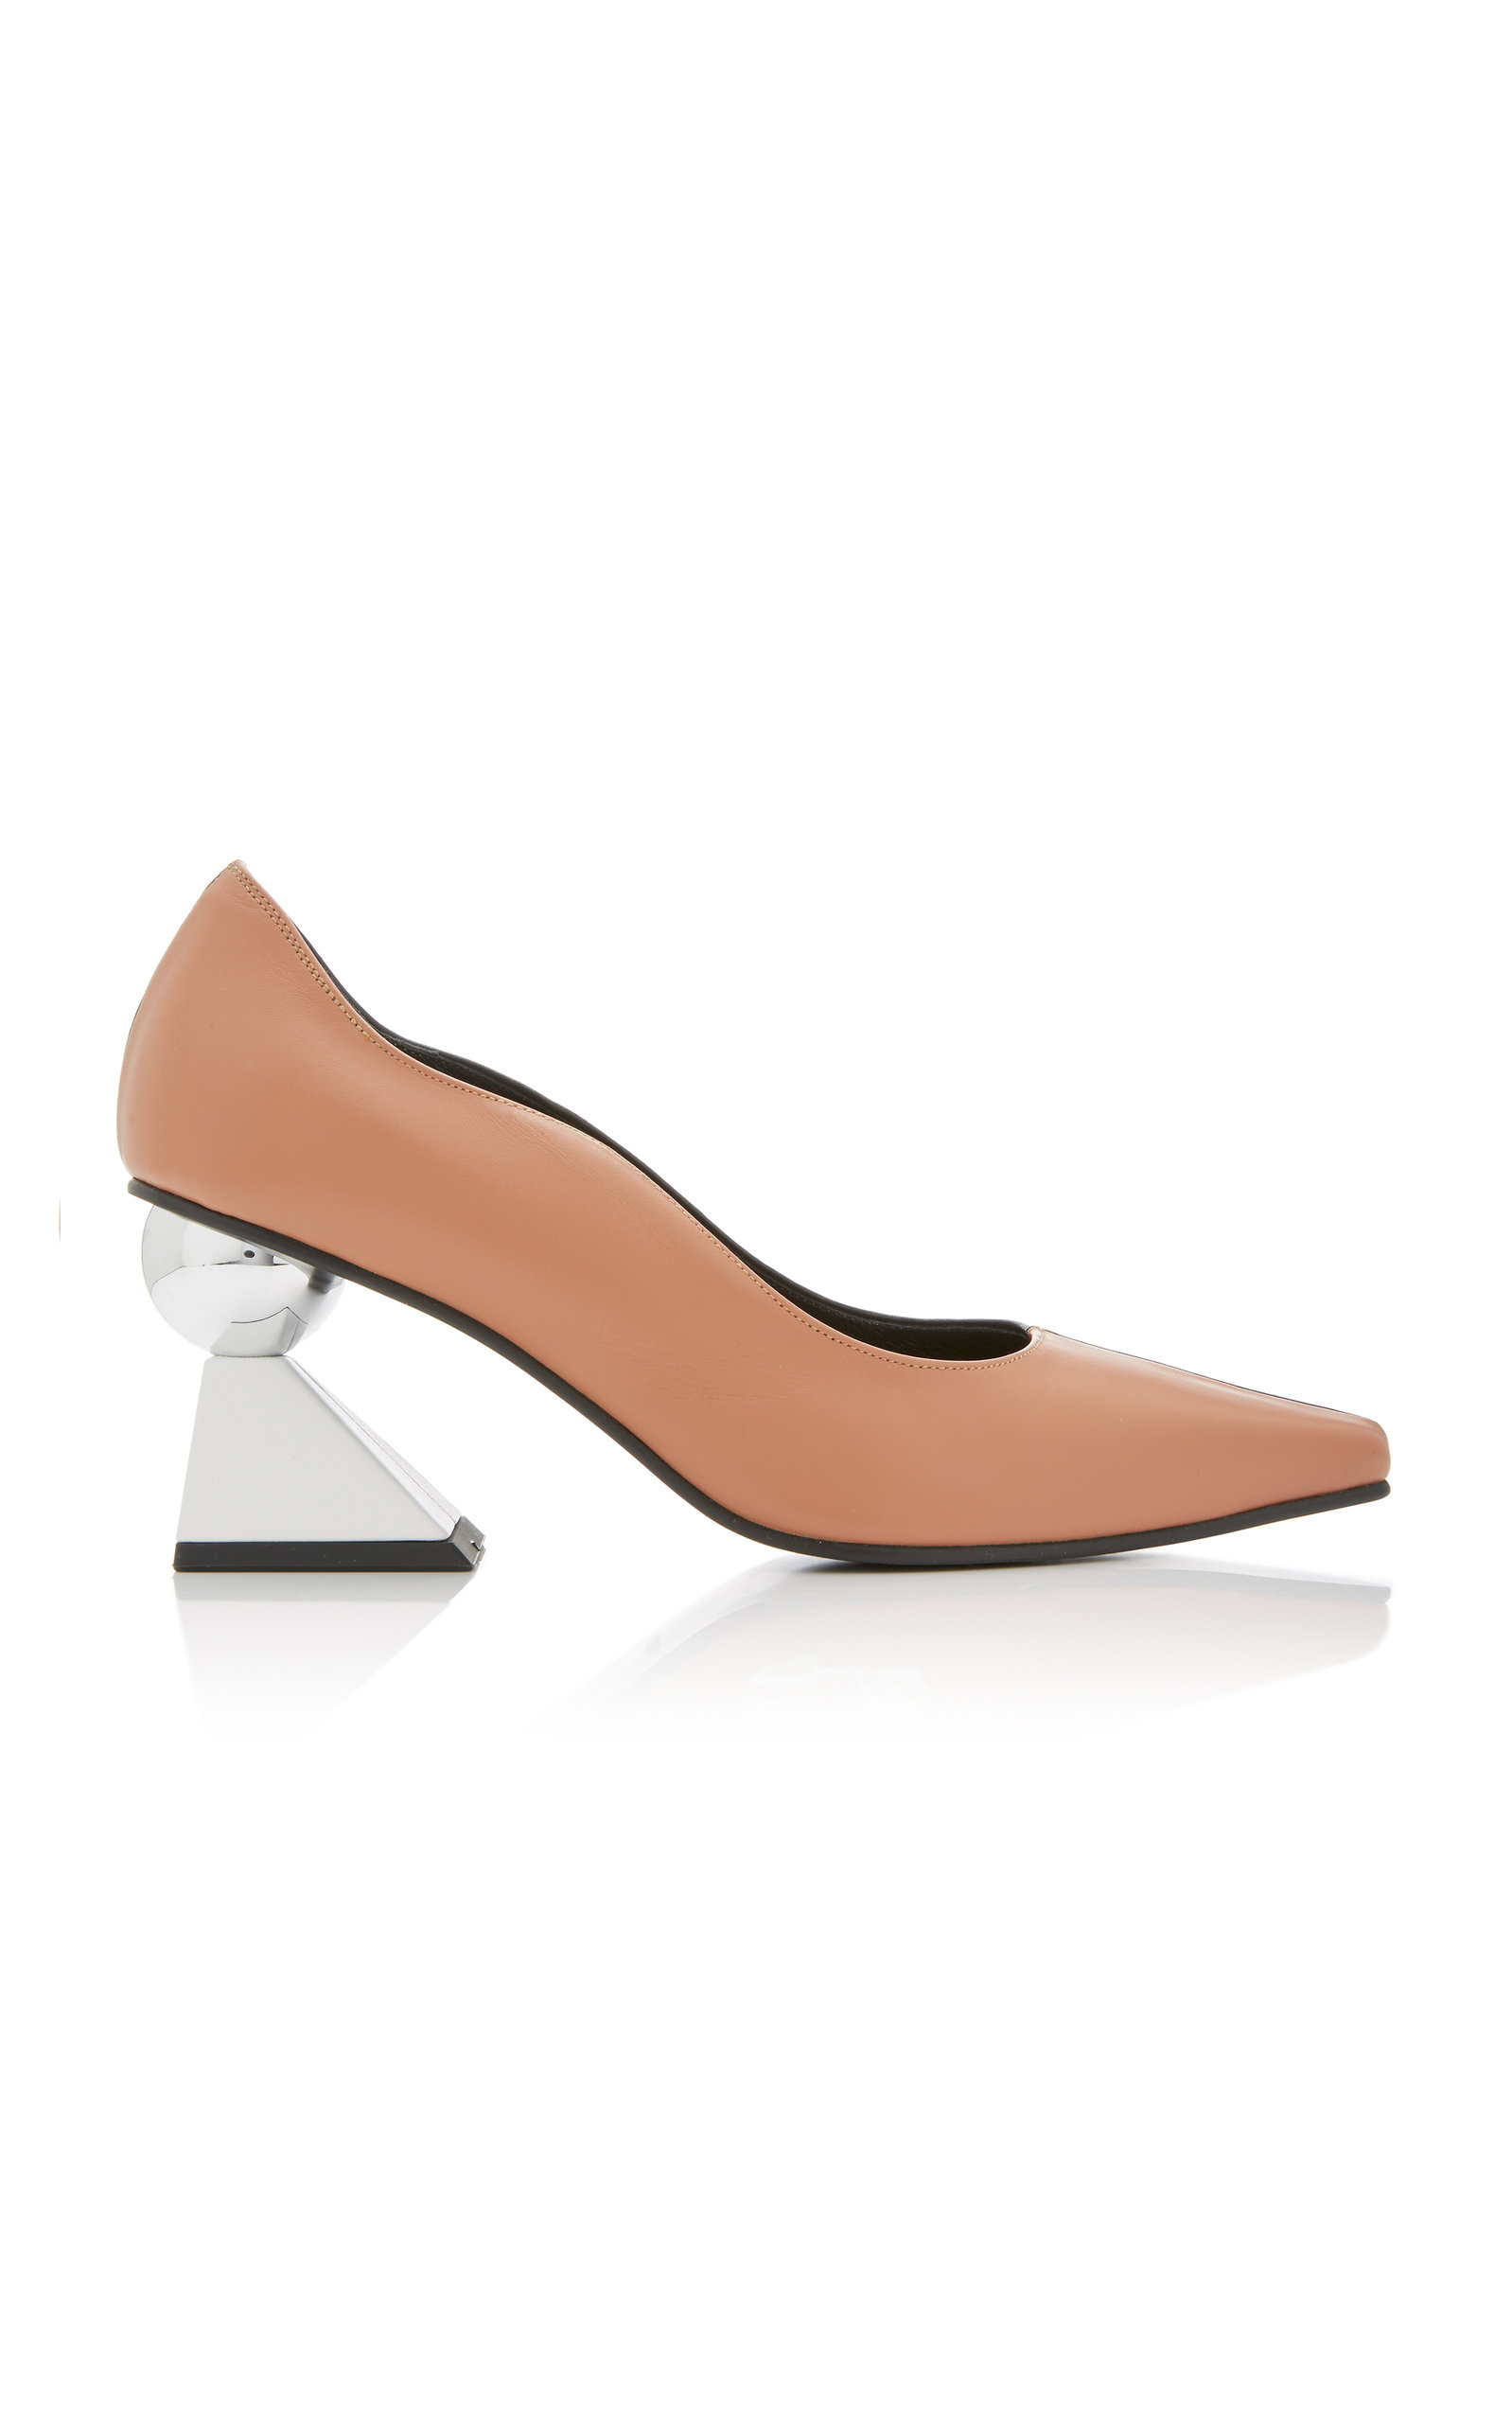 Exclusive Paola Two Tone Leather Pumps by Yuul Yie